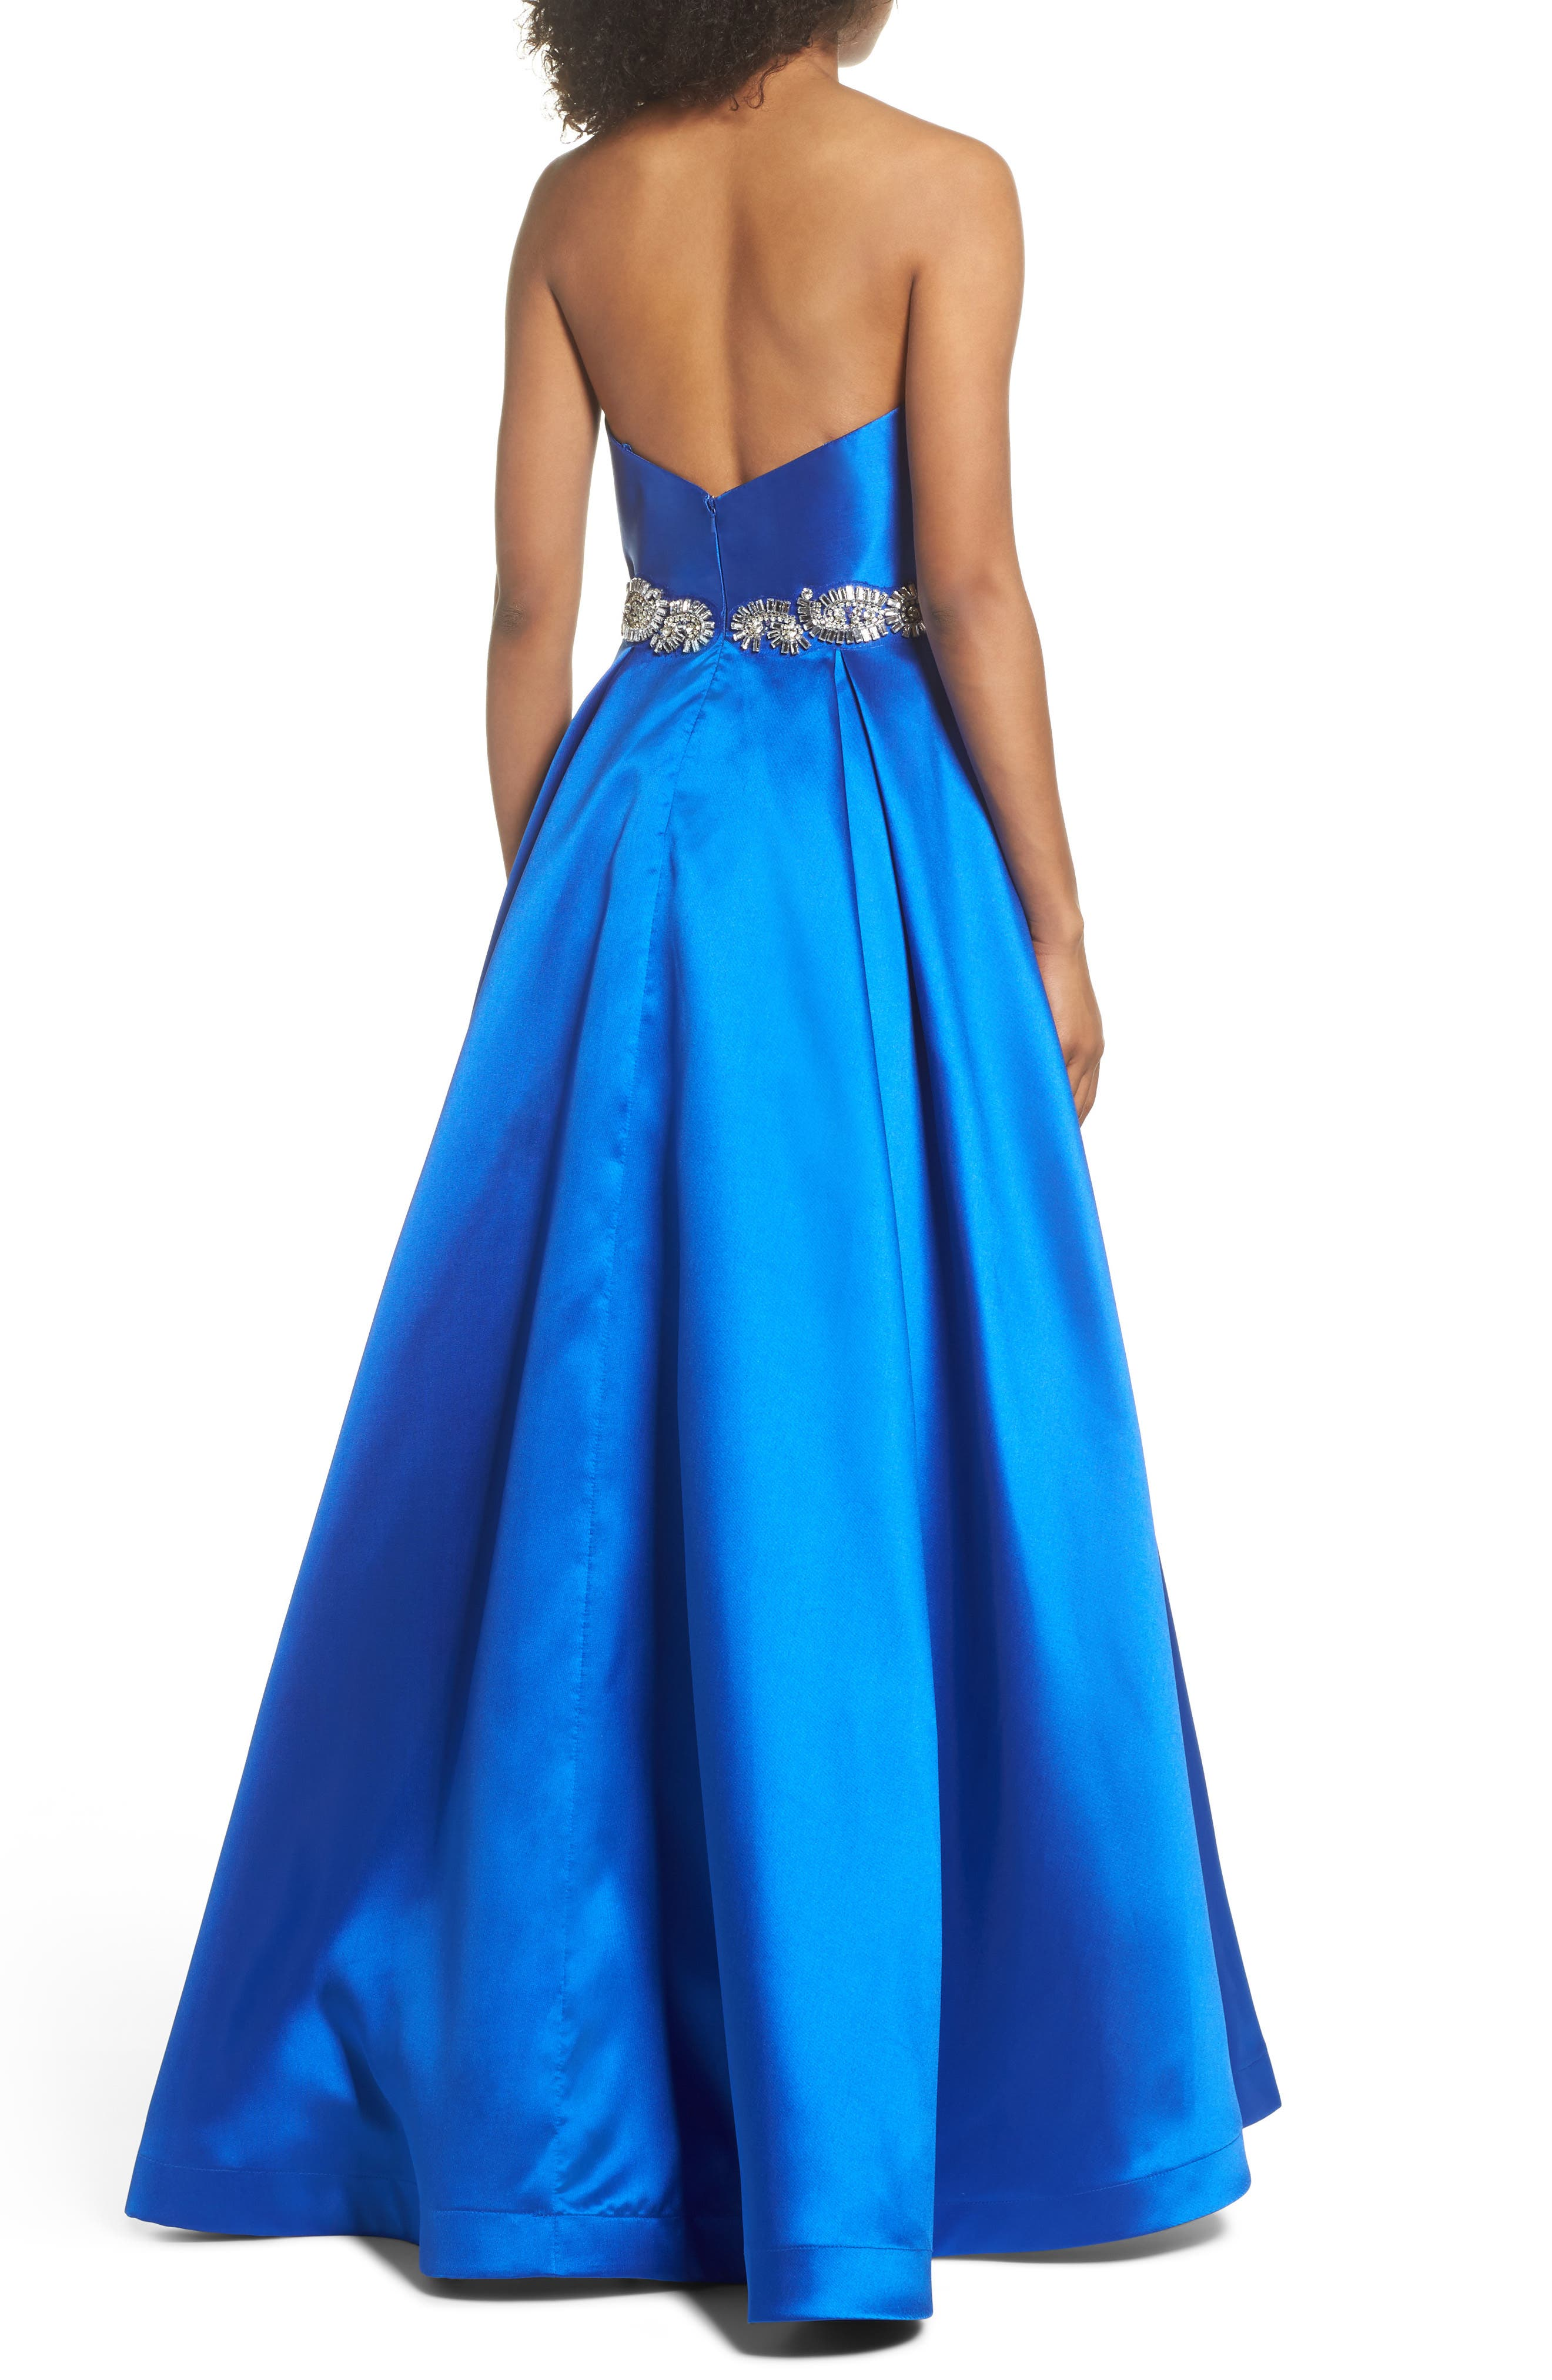 Embellished Strapless Ballgown,                             Alternate thumbnail 2, color,                             Blue